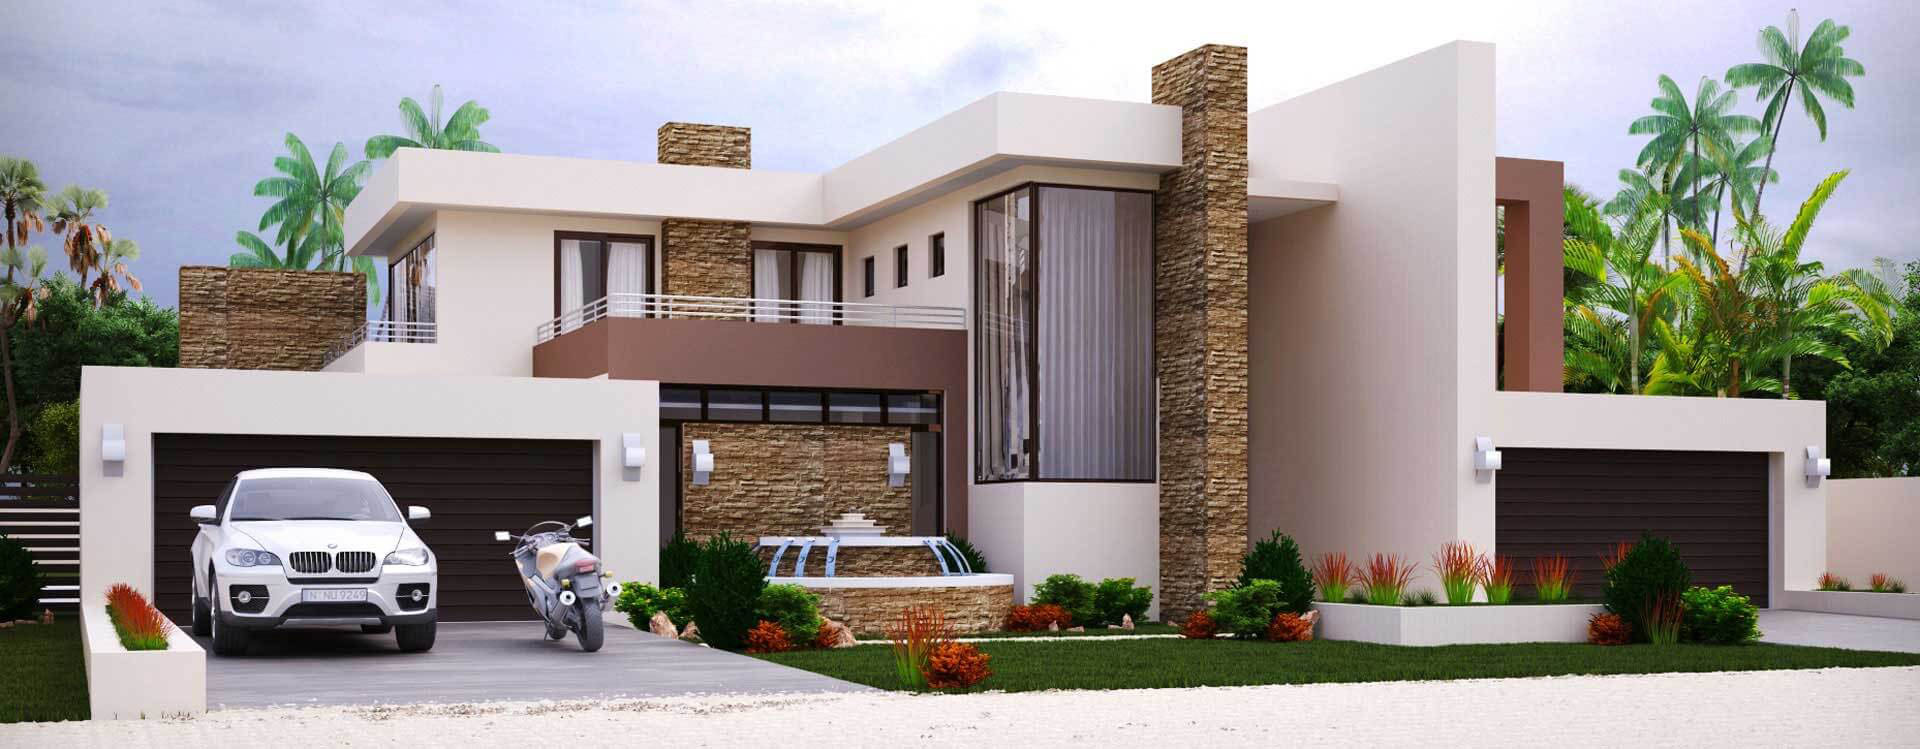 4 Bedroom House Plan For Sale  South African Designs